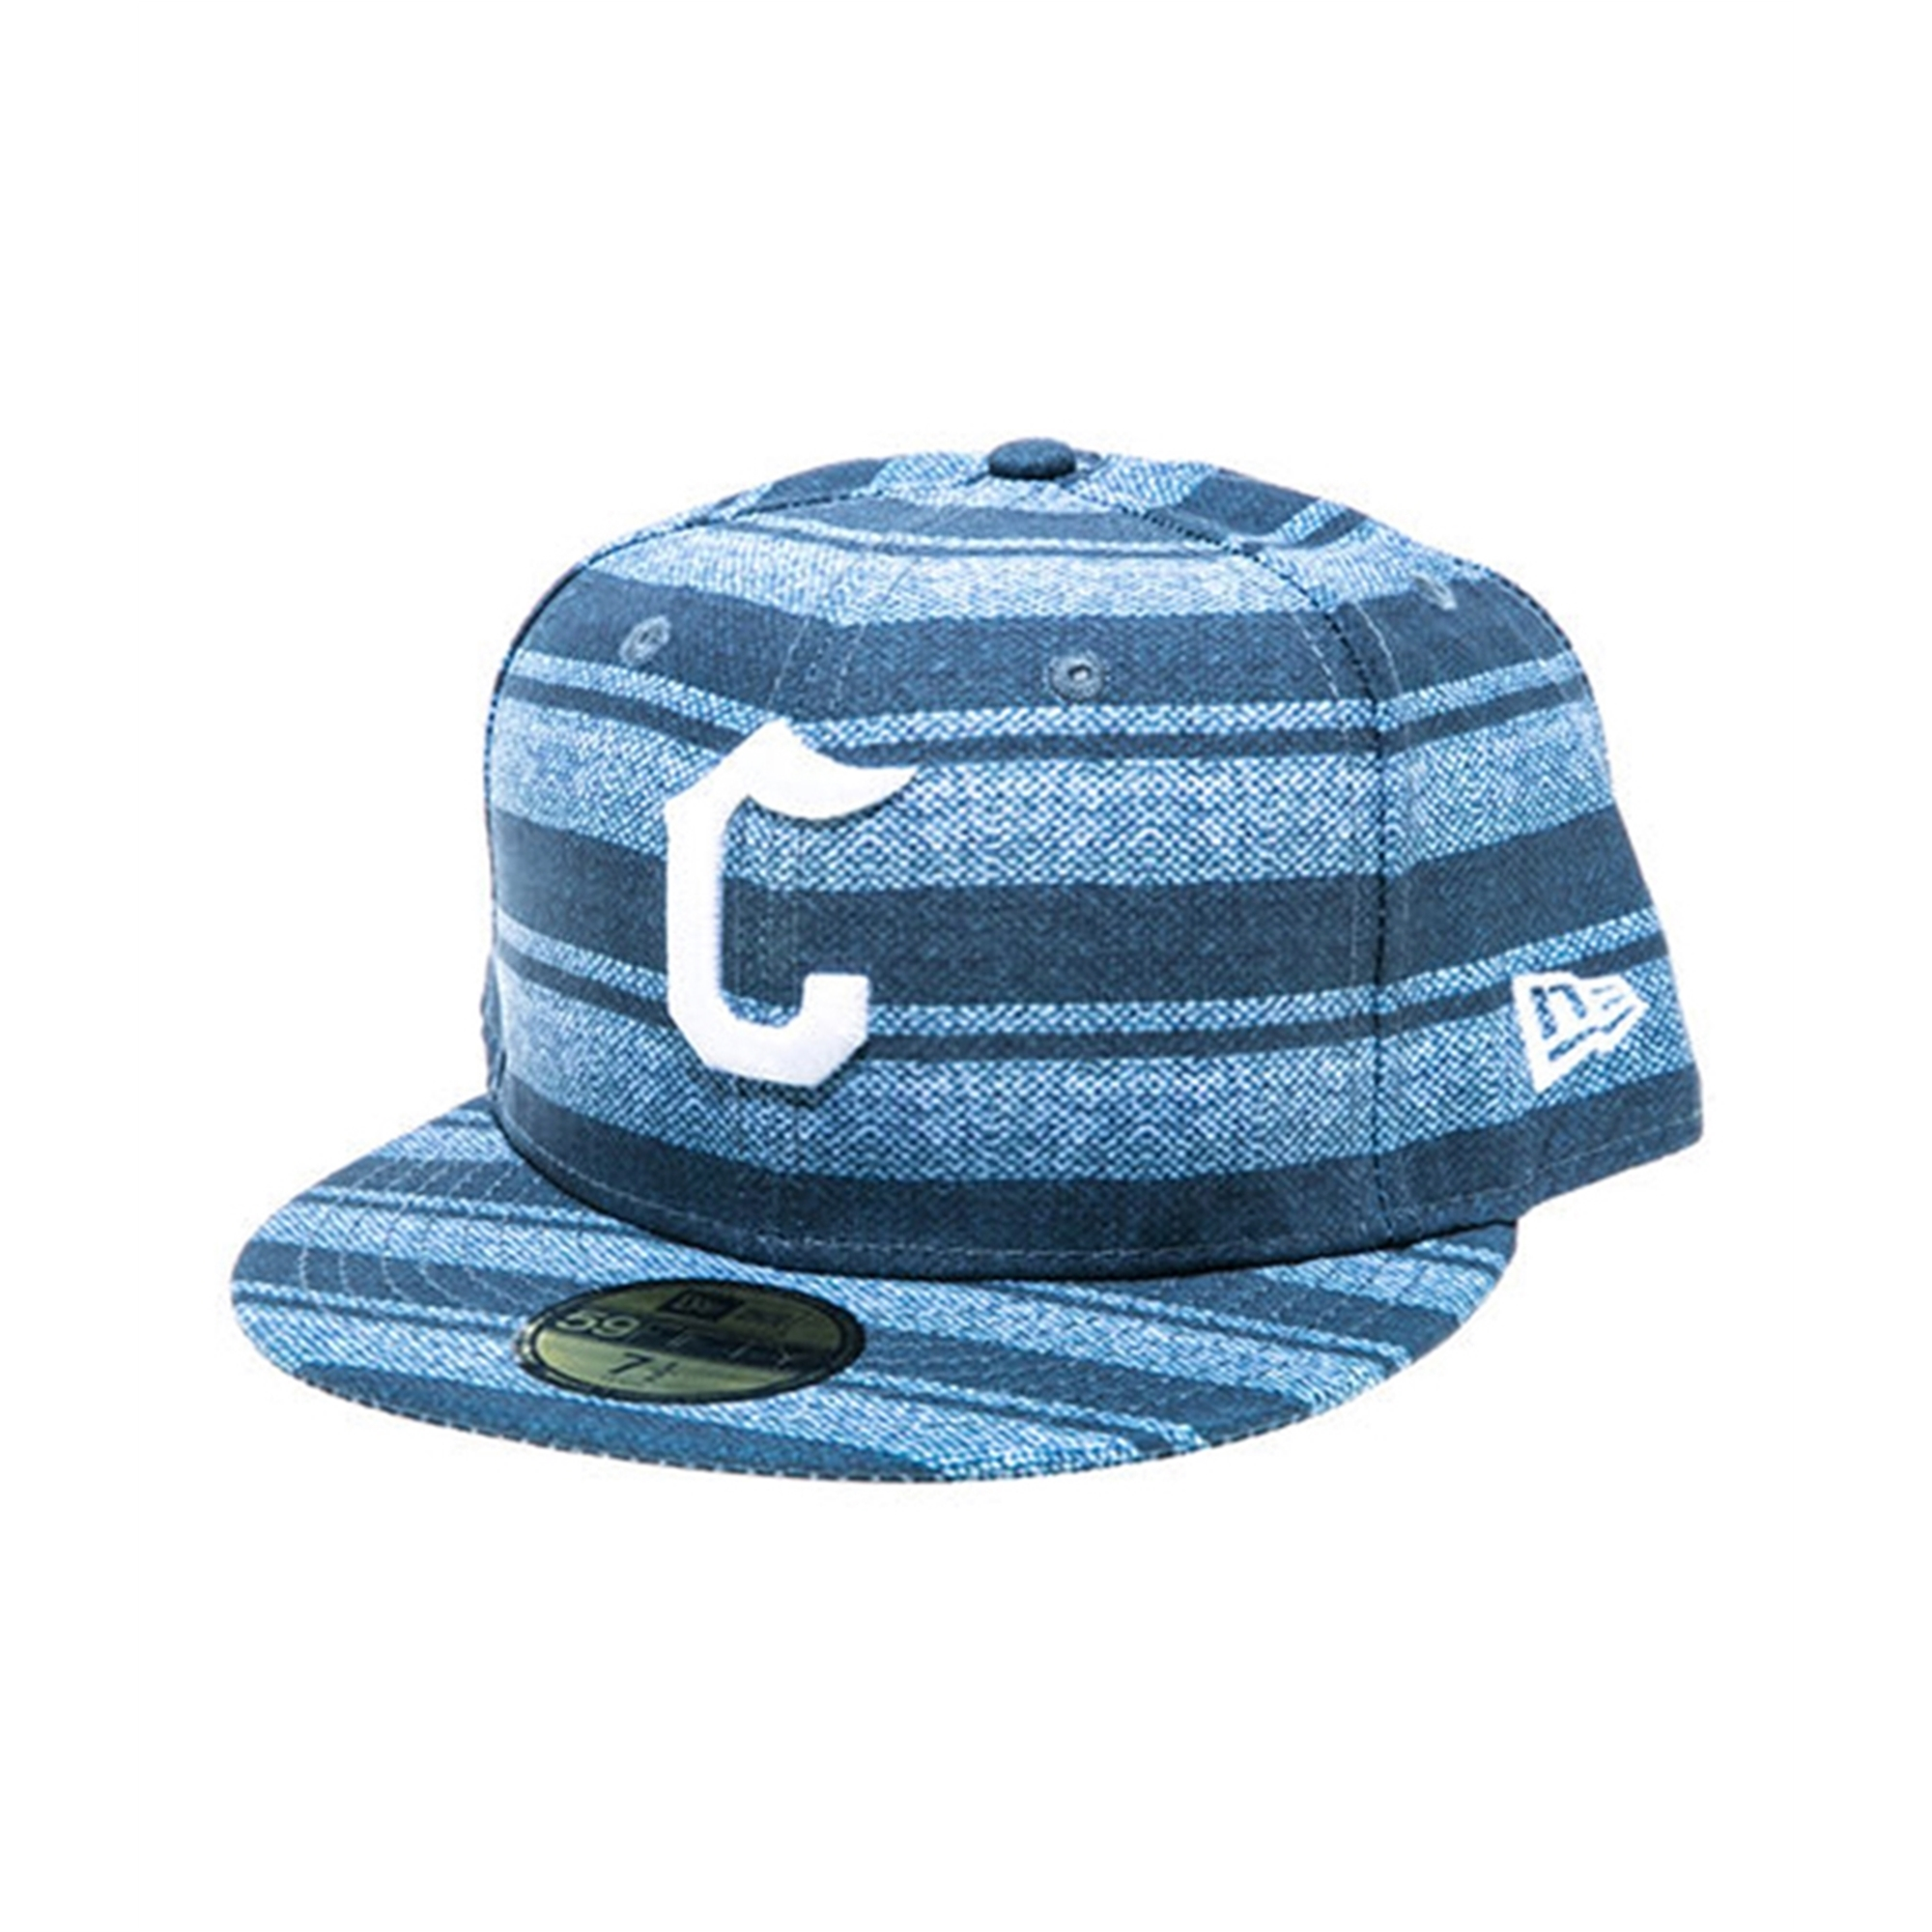 Crooks & Castles Mens The Baja Califas Fitted Baseball Cap